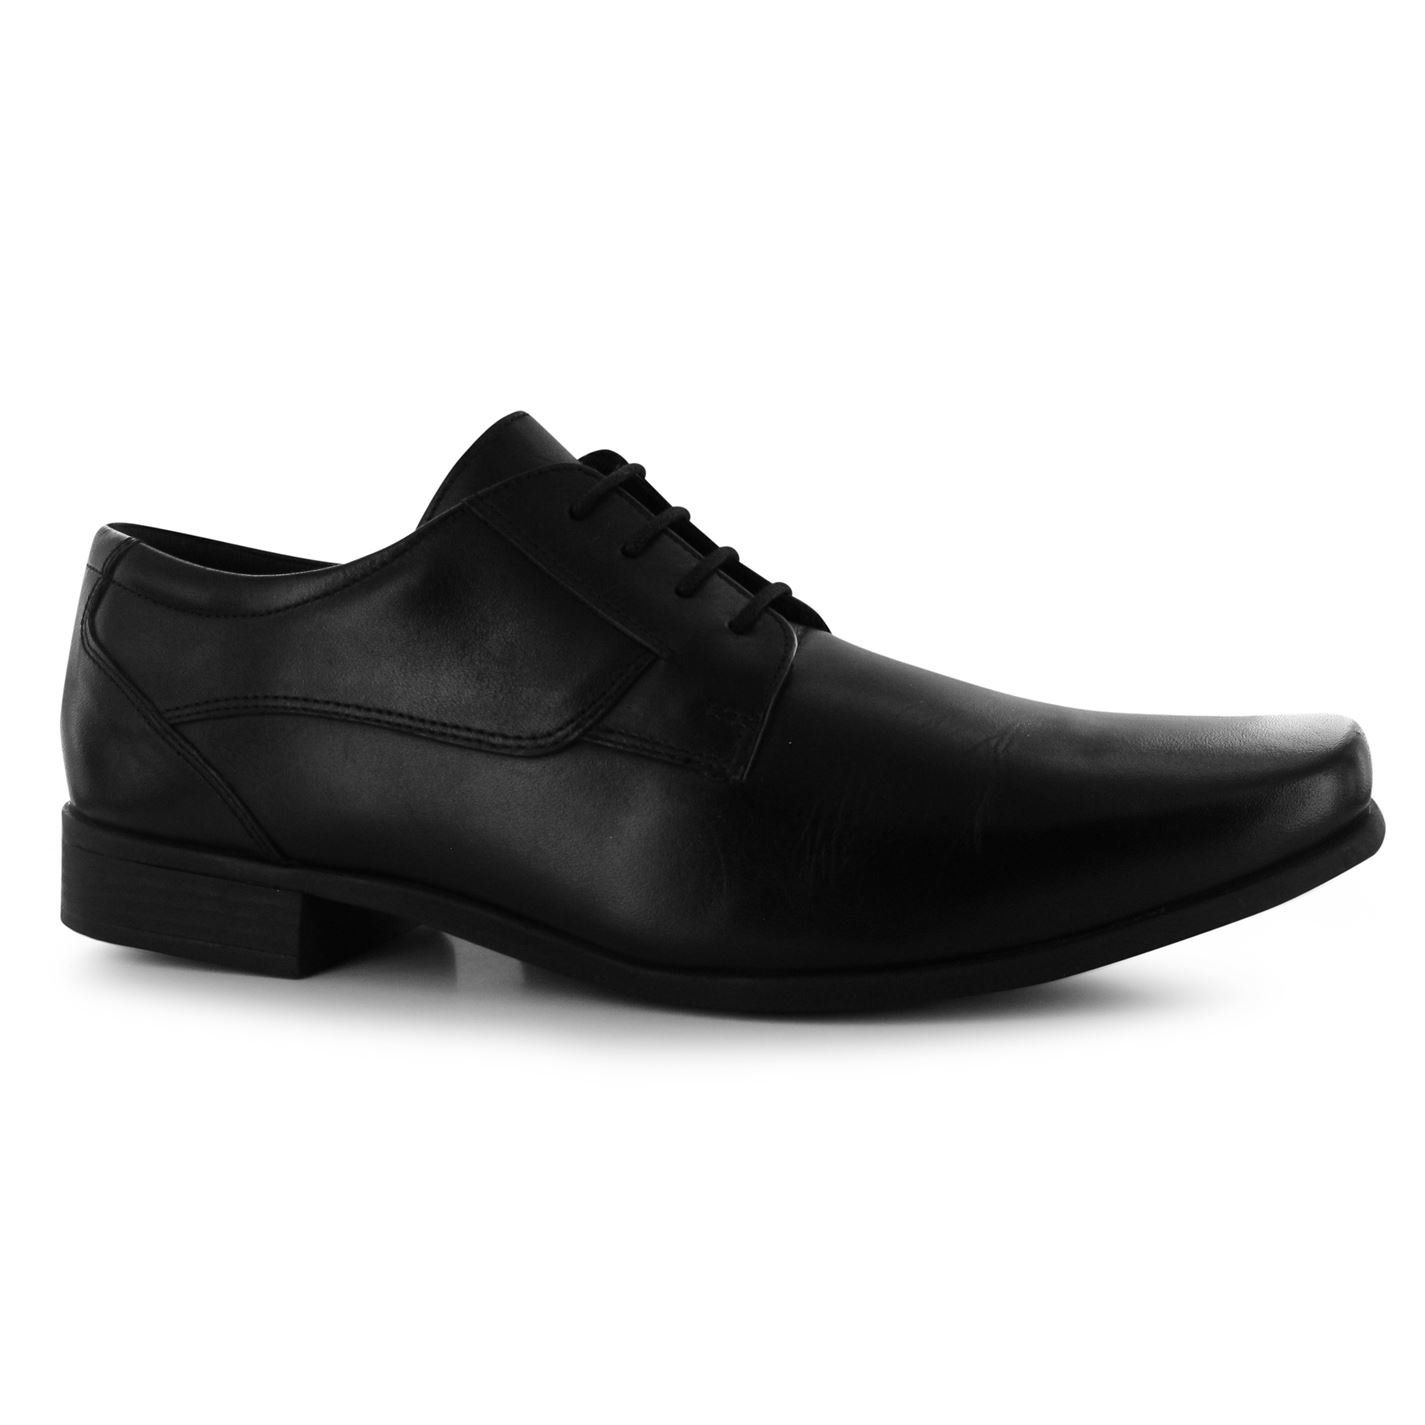 Kickers Mens Vintner Shoes Smart Formal Style Lace up Front Heel Black UK 8 (42)